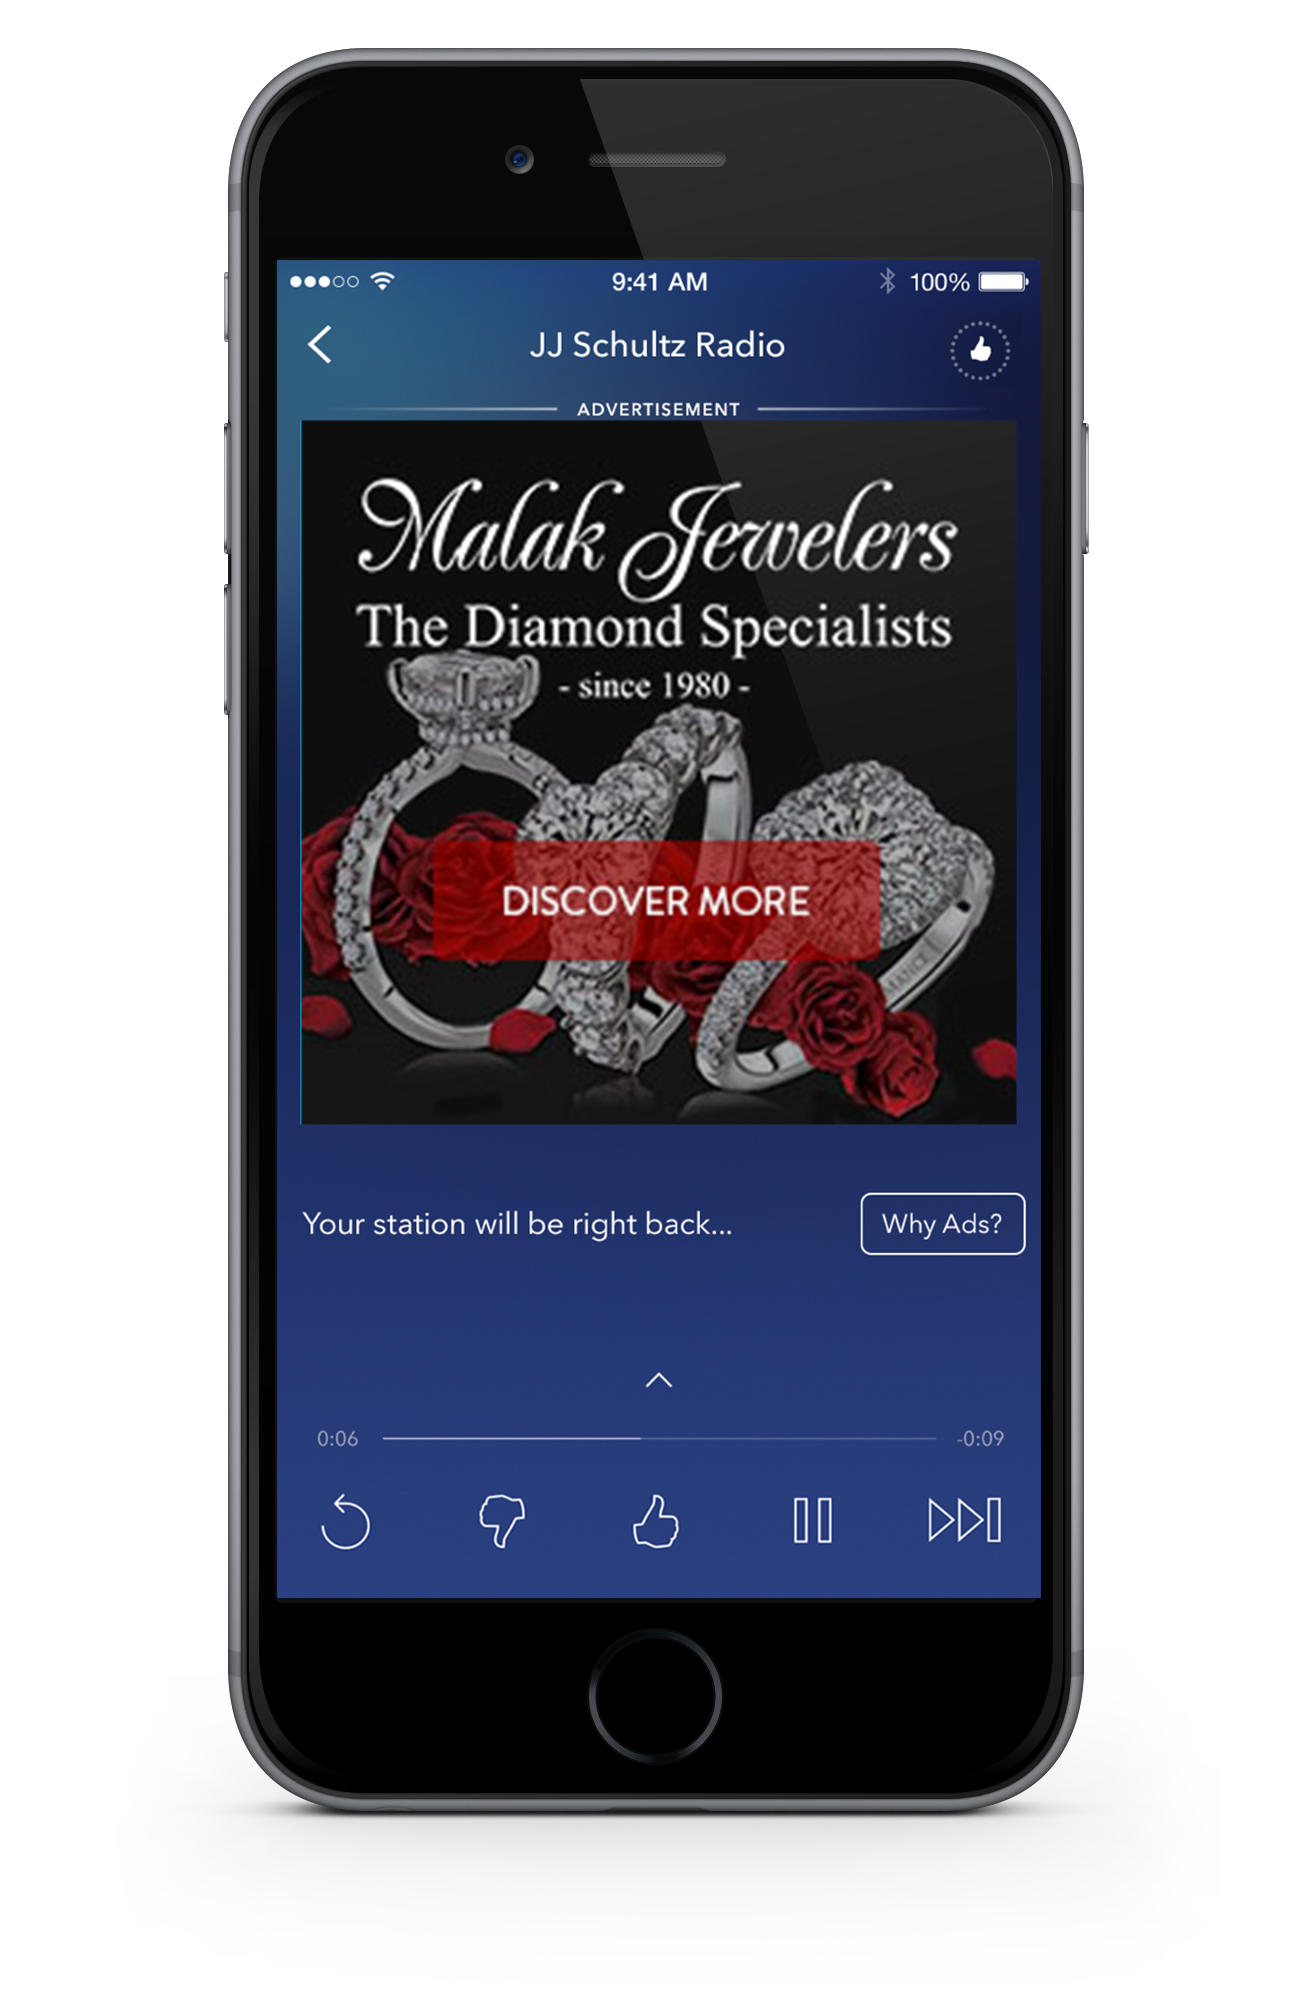 Malak Jewelers - Malak Jewelers was looking to reach millennials on the go. Both ads depict scenarios through dialogue, one of my favorite methods: the first audio ad features a dialogue between two guy buds, while the second ad illustrates a couple having dinner at home.